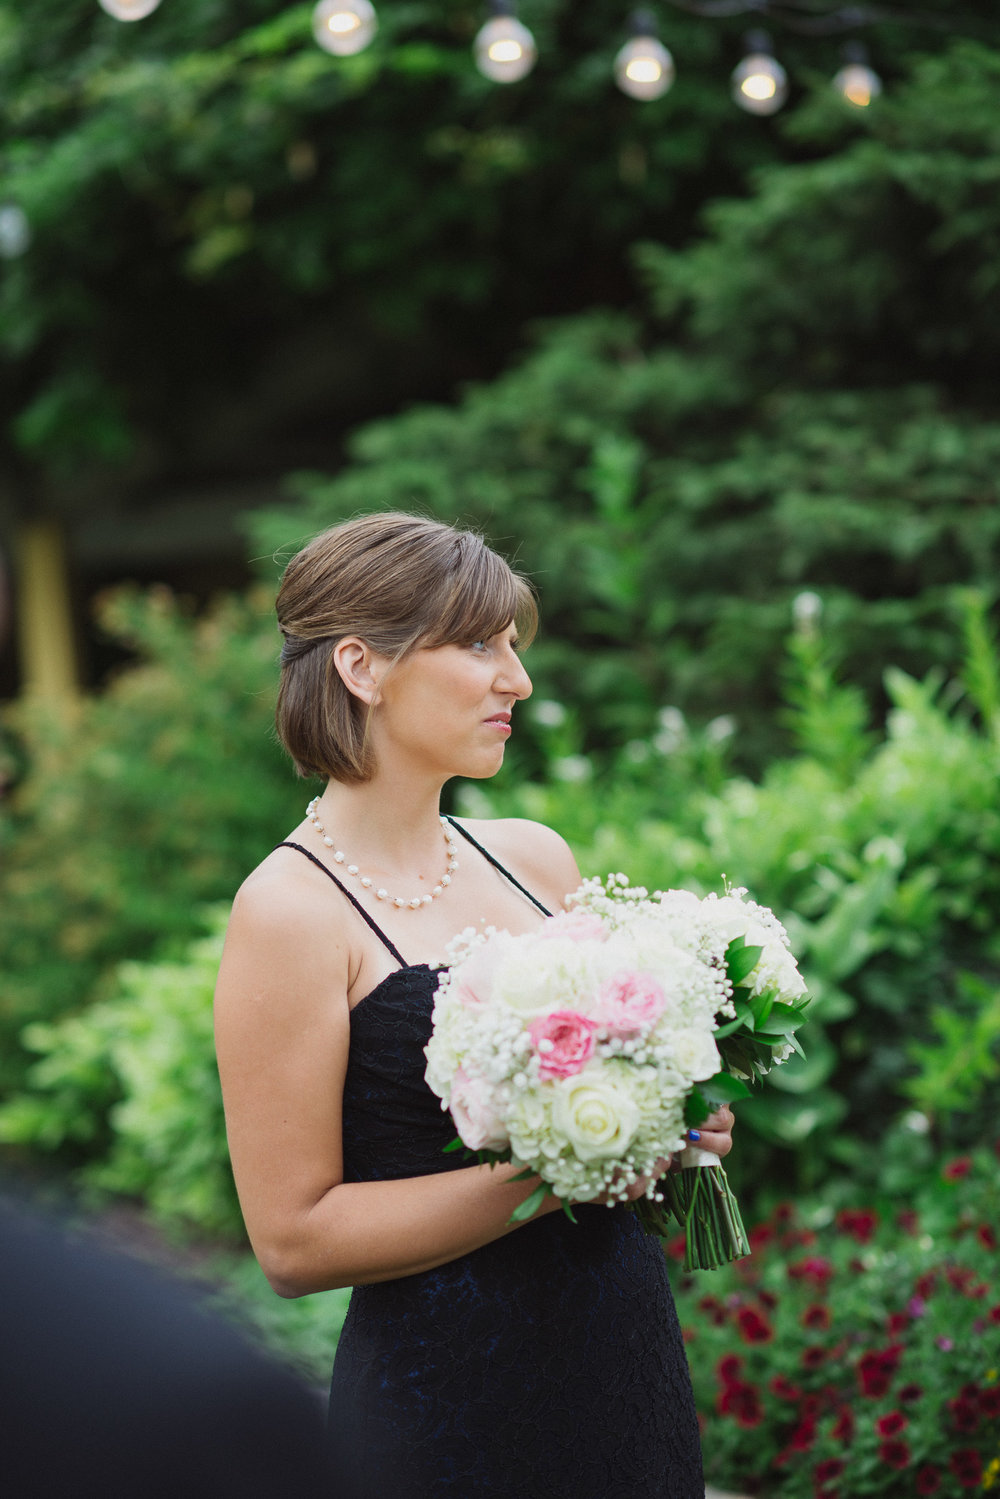 NH Wedding Photography: matron of honor